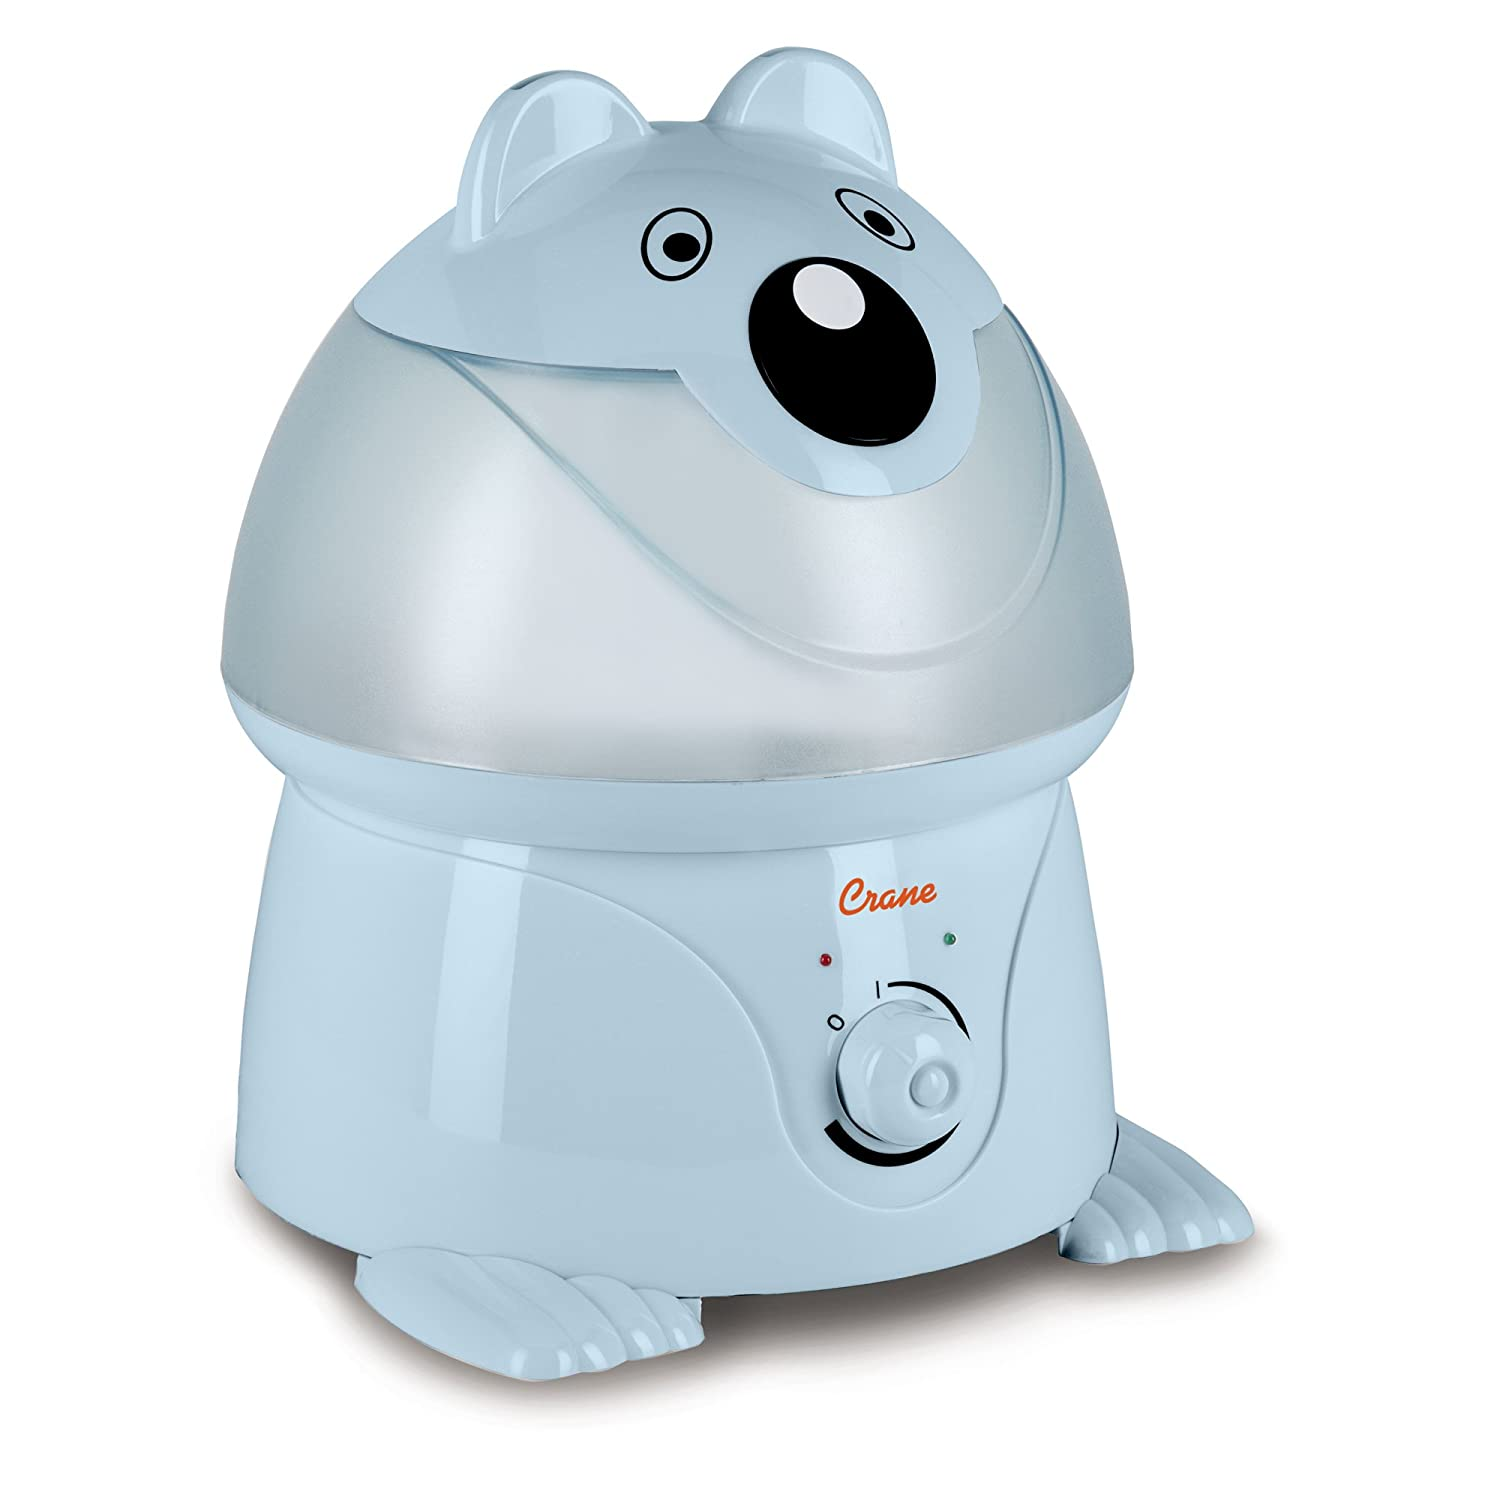 Top 8 Best Humidifiers for Babies Reviews in 2021 8